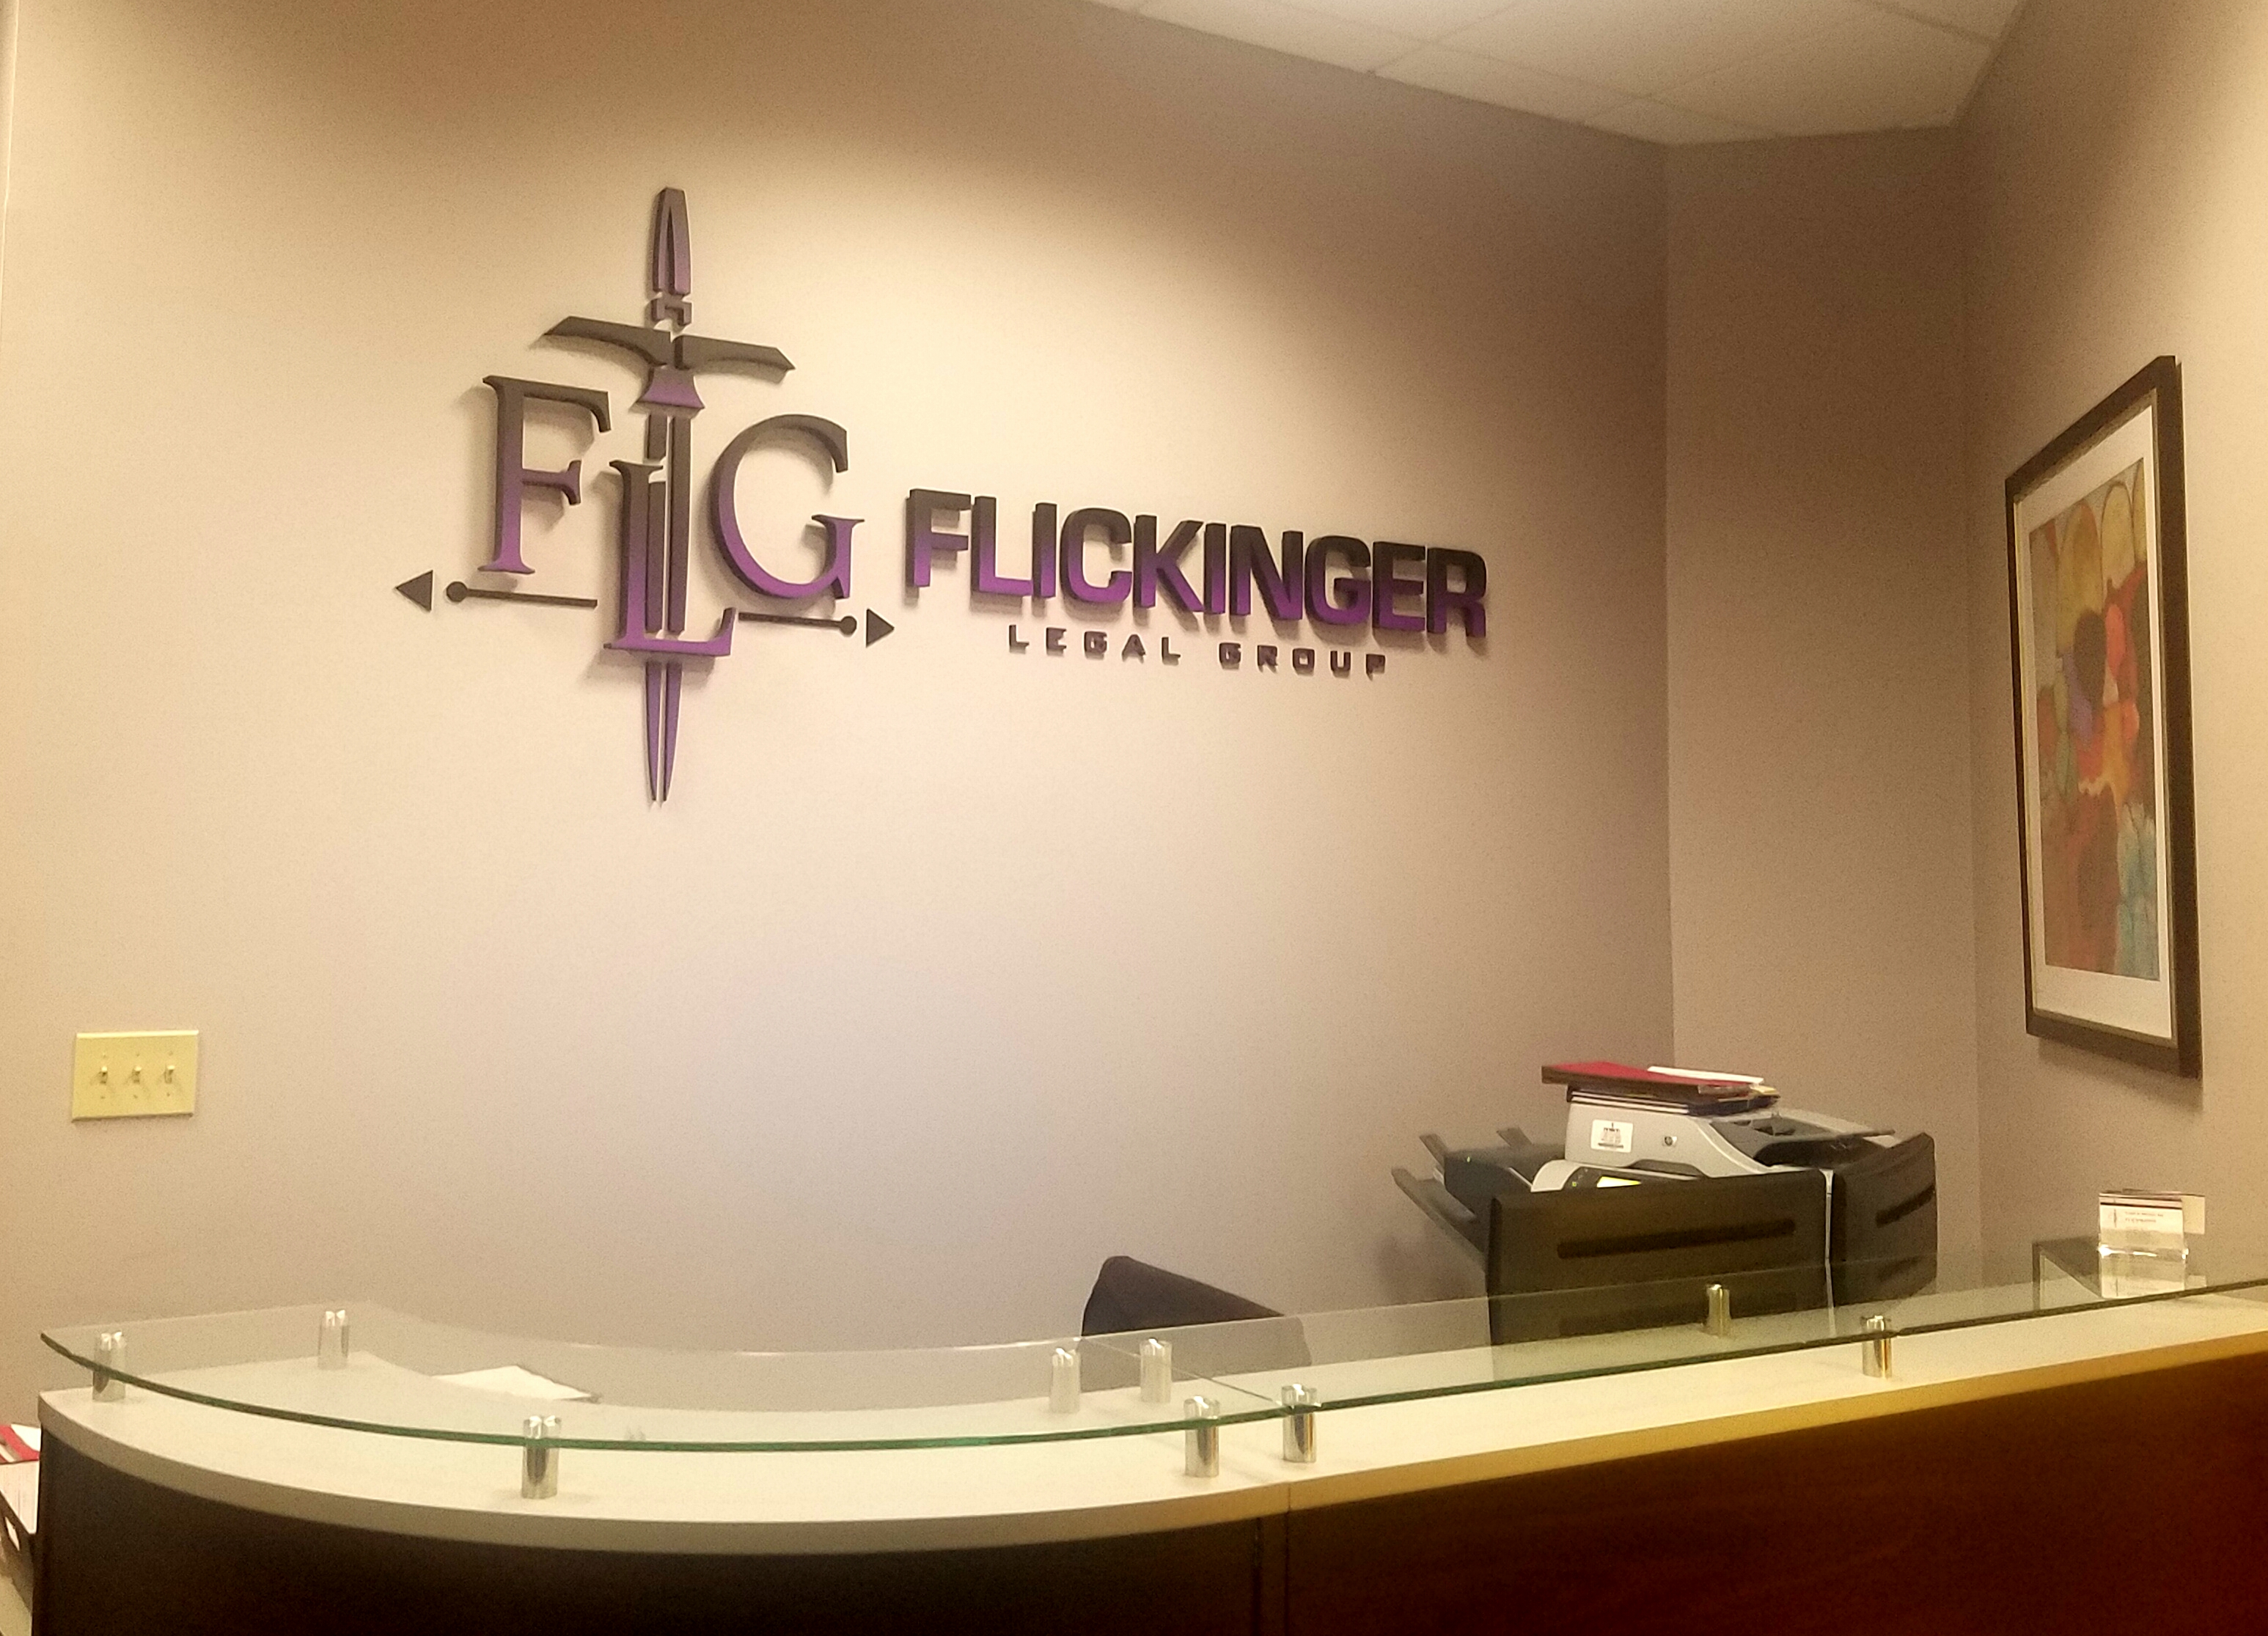 Motorcycle accident attorney? Personal injury attorney? | Flickinger Legal